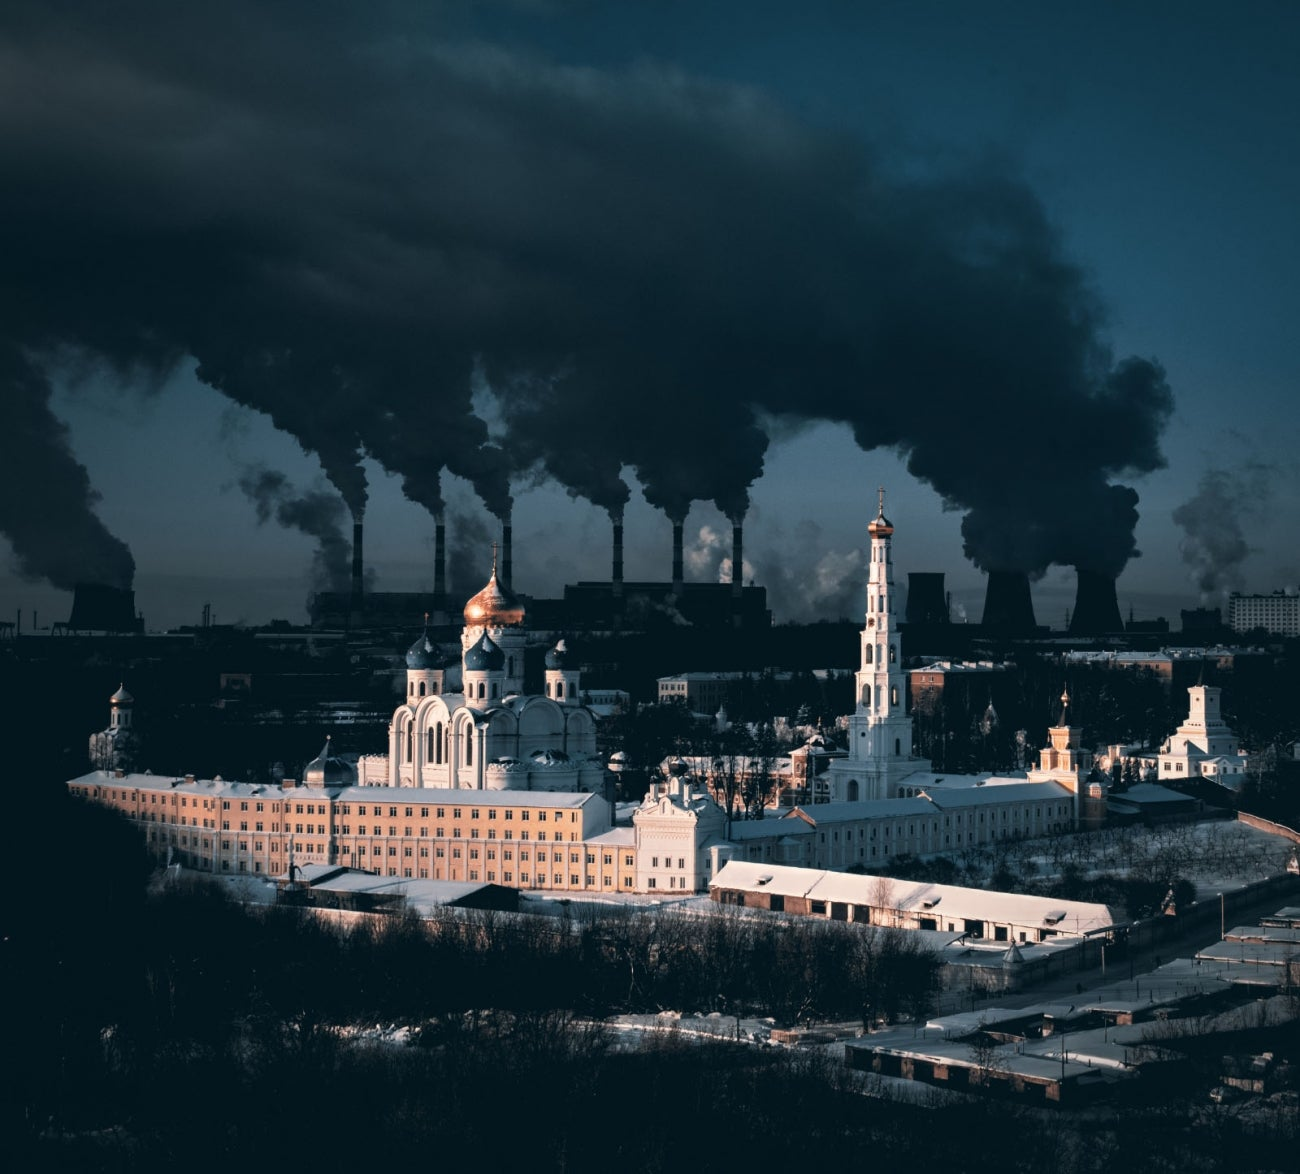 A 500-year-old monastery in the Moscow region and a large power plant in the background